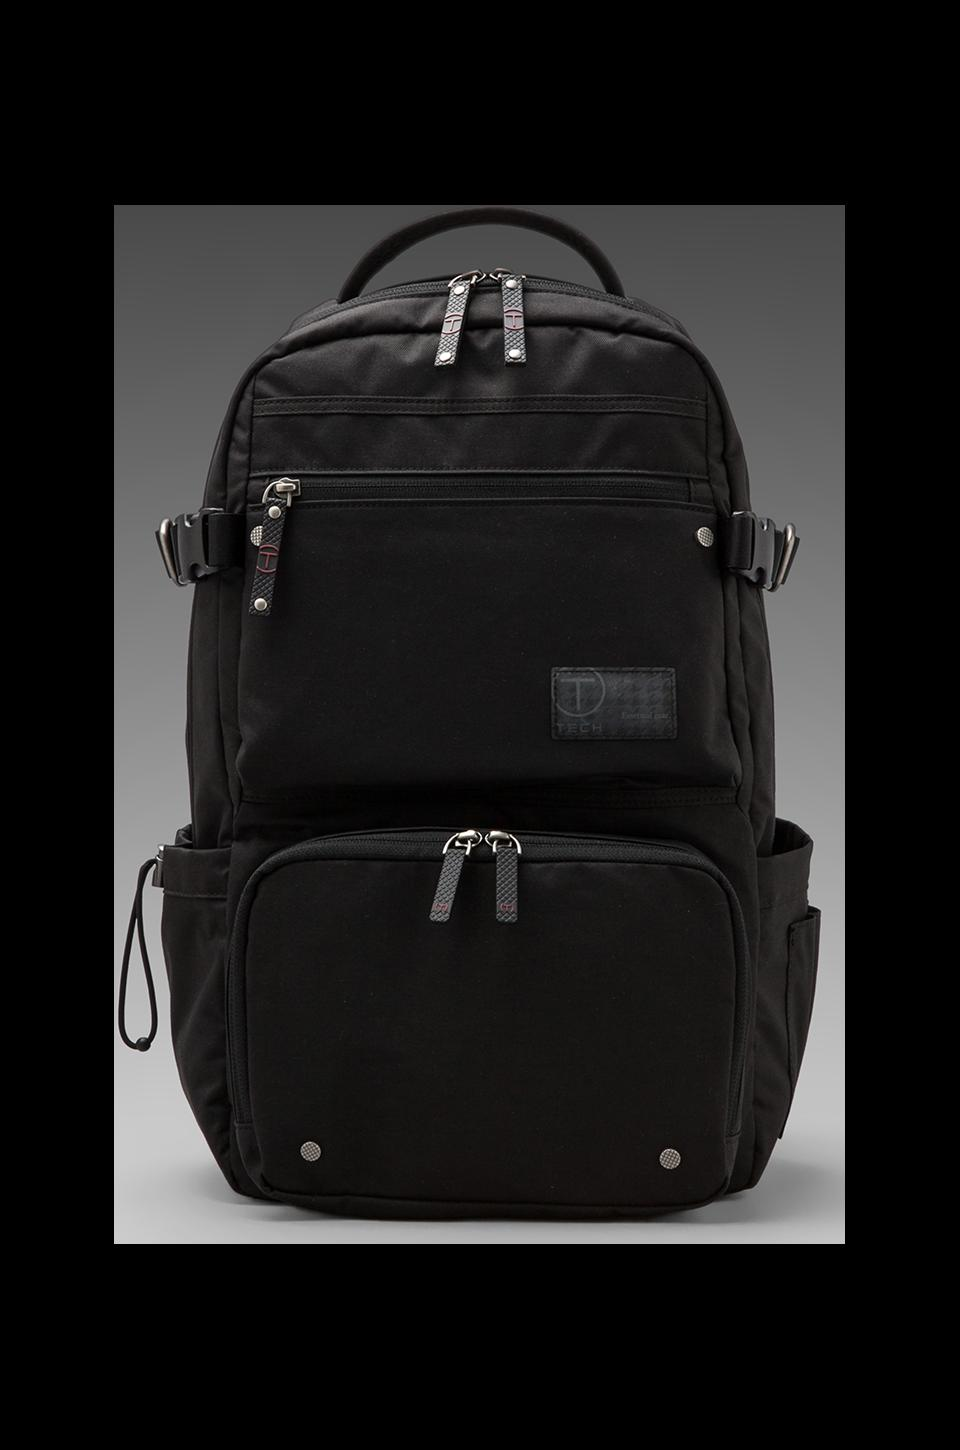 Tumi Melville Zip Top Brief Pack in Jet